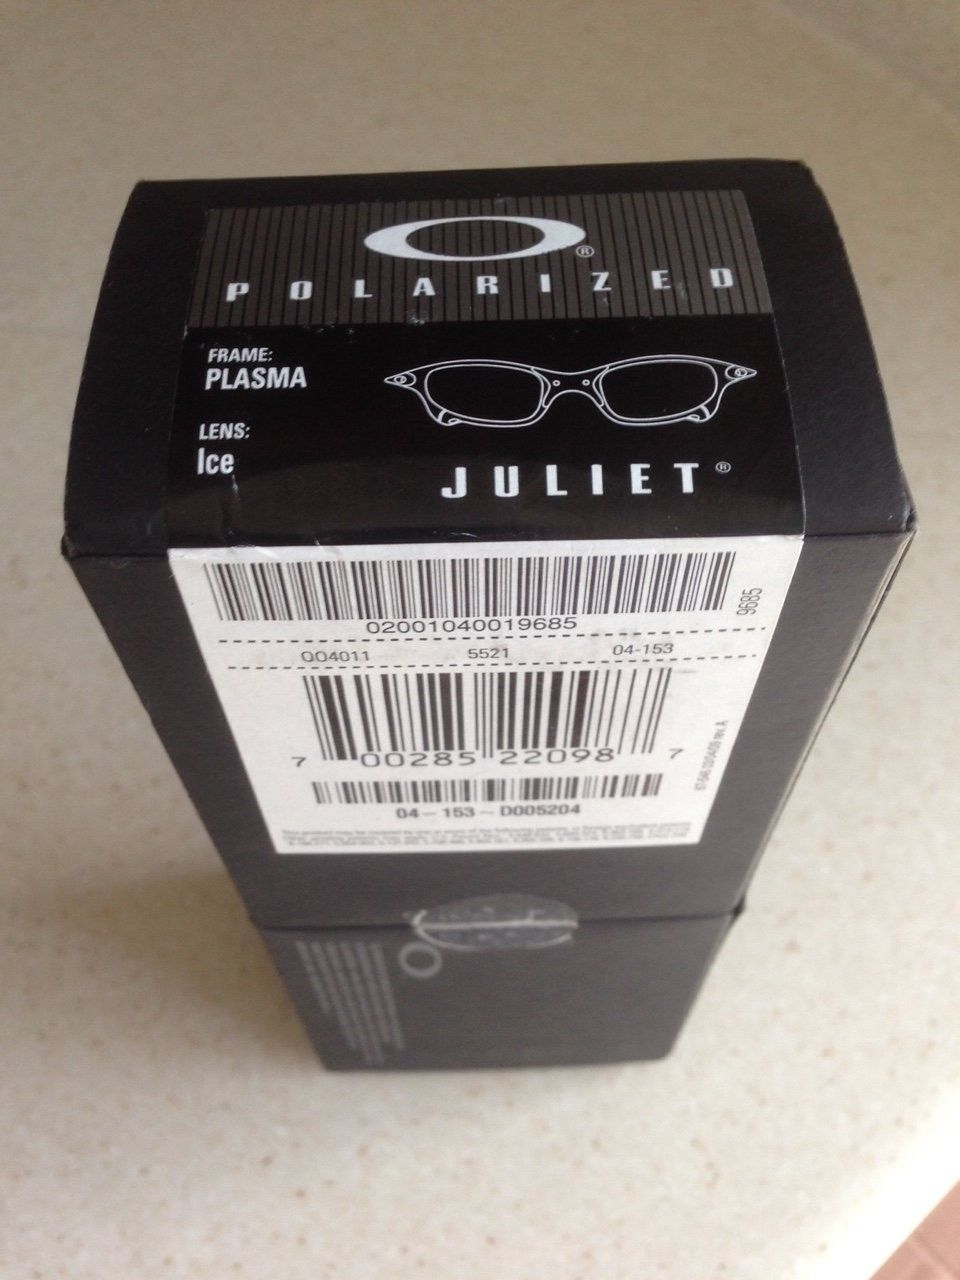 Juliet Plasma / Polarized Ice Complete Set Box, Coin, Papers Near Mint - IMG_8270.JPG